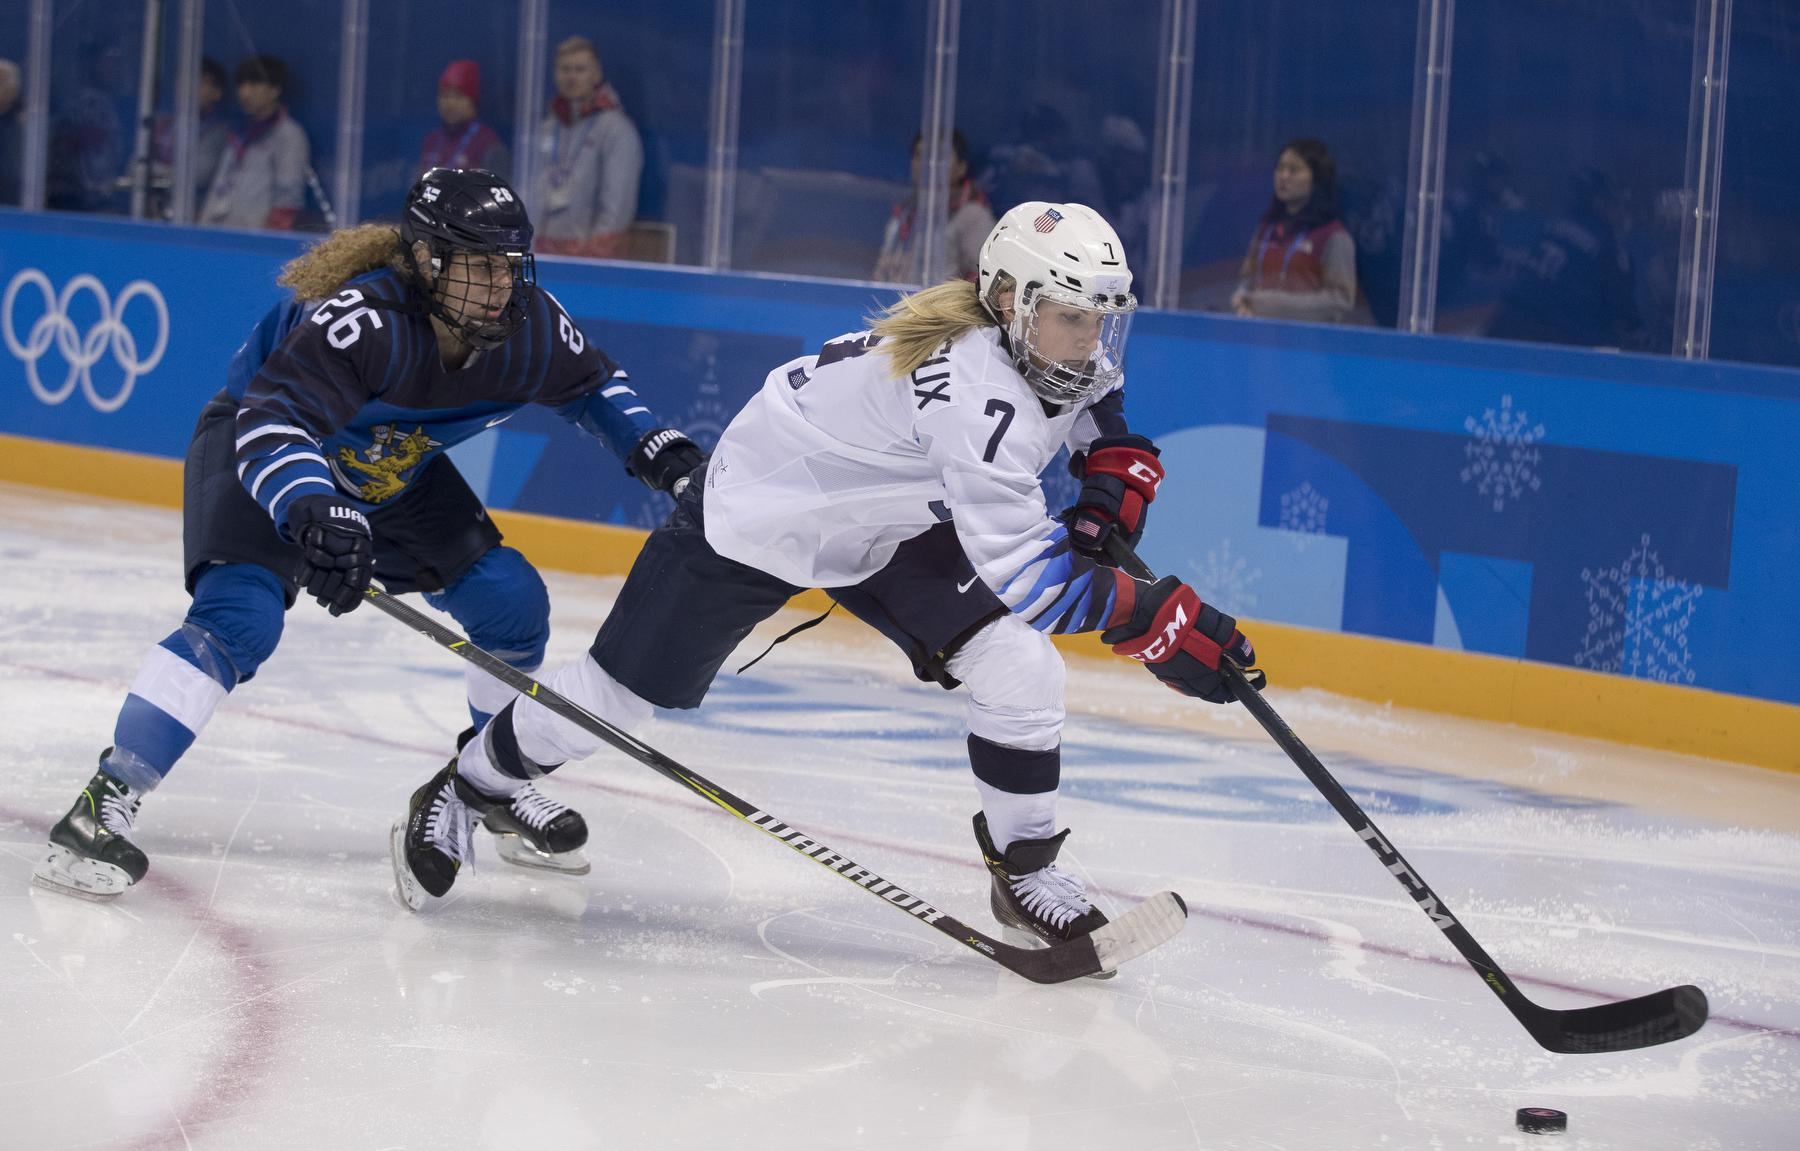 Canada and Russian Federation maintain collision course in hockey